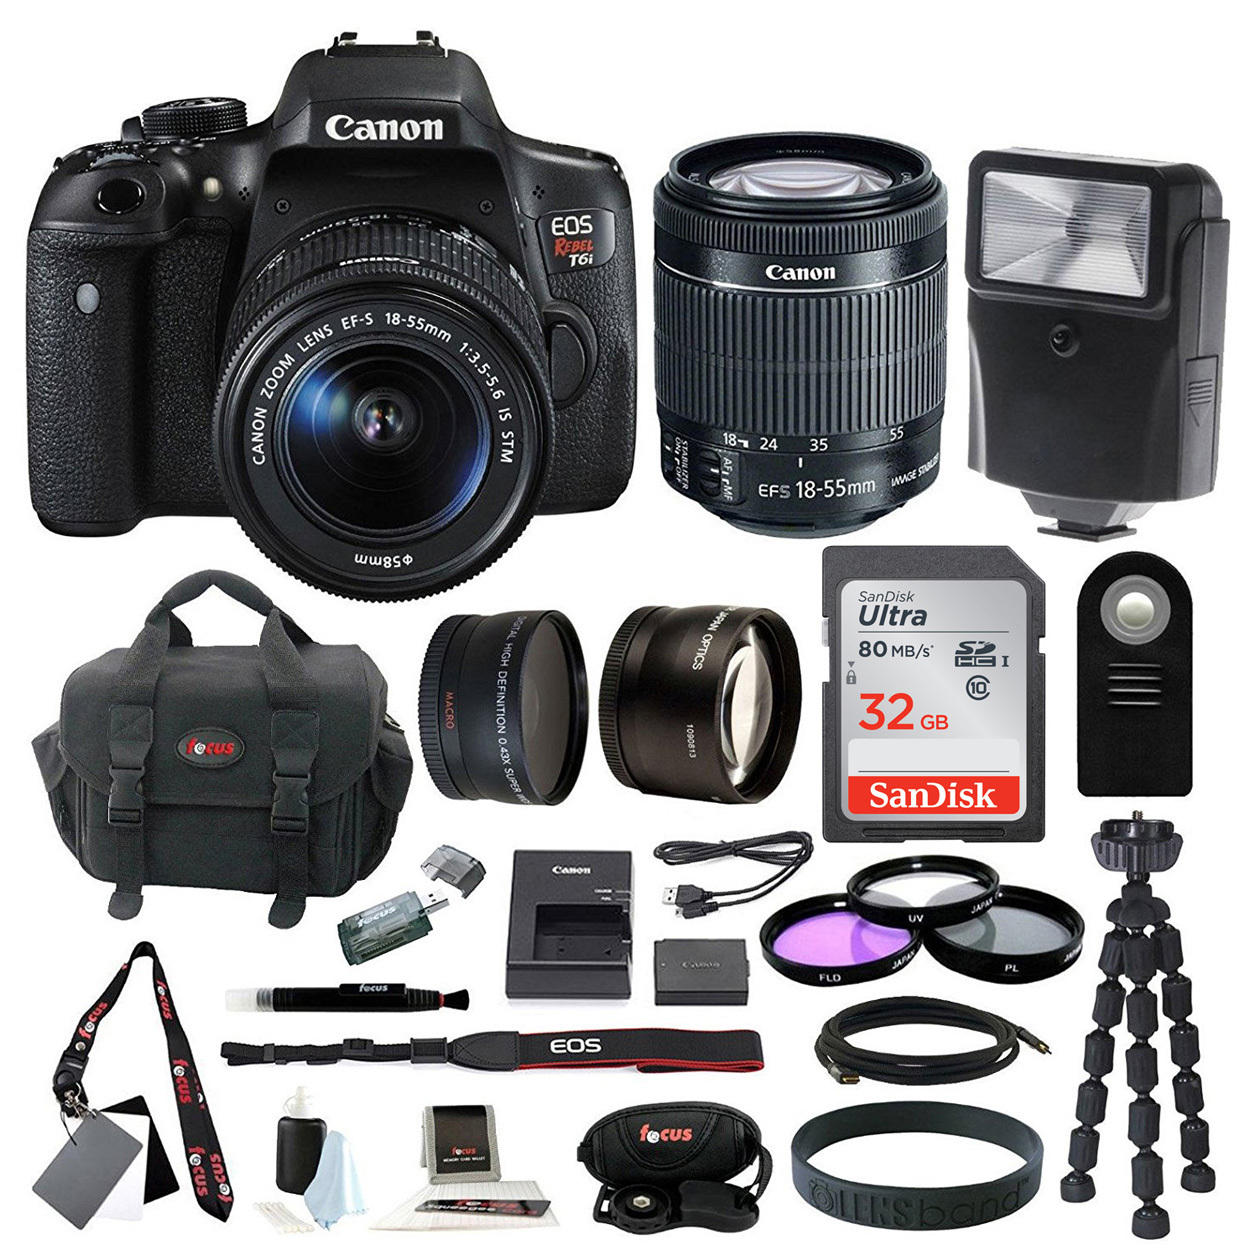 Canon EOS Rebel T6i Digital Camera with EF-S 18-55mm f/3.5-5.6 IS STM lens + kit